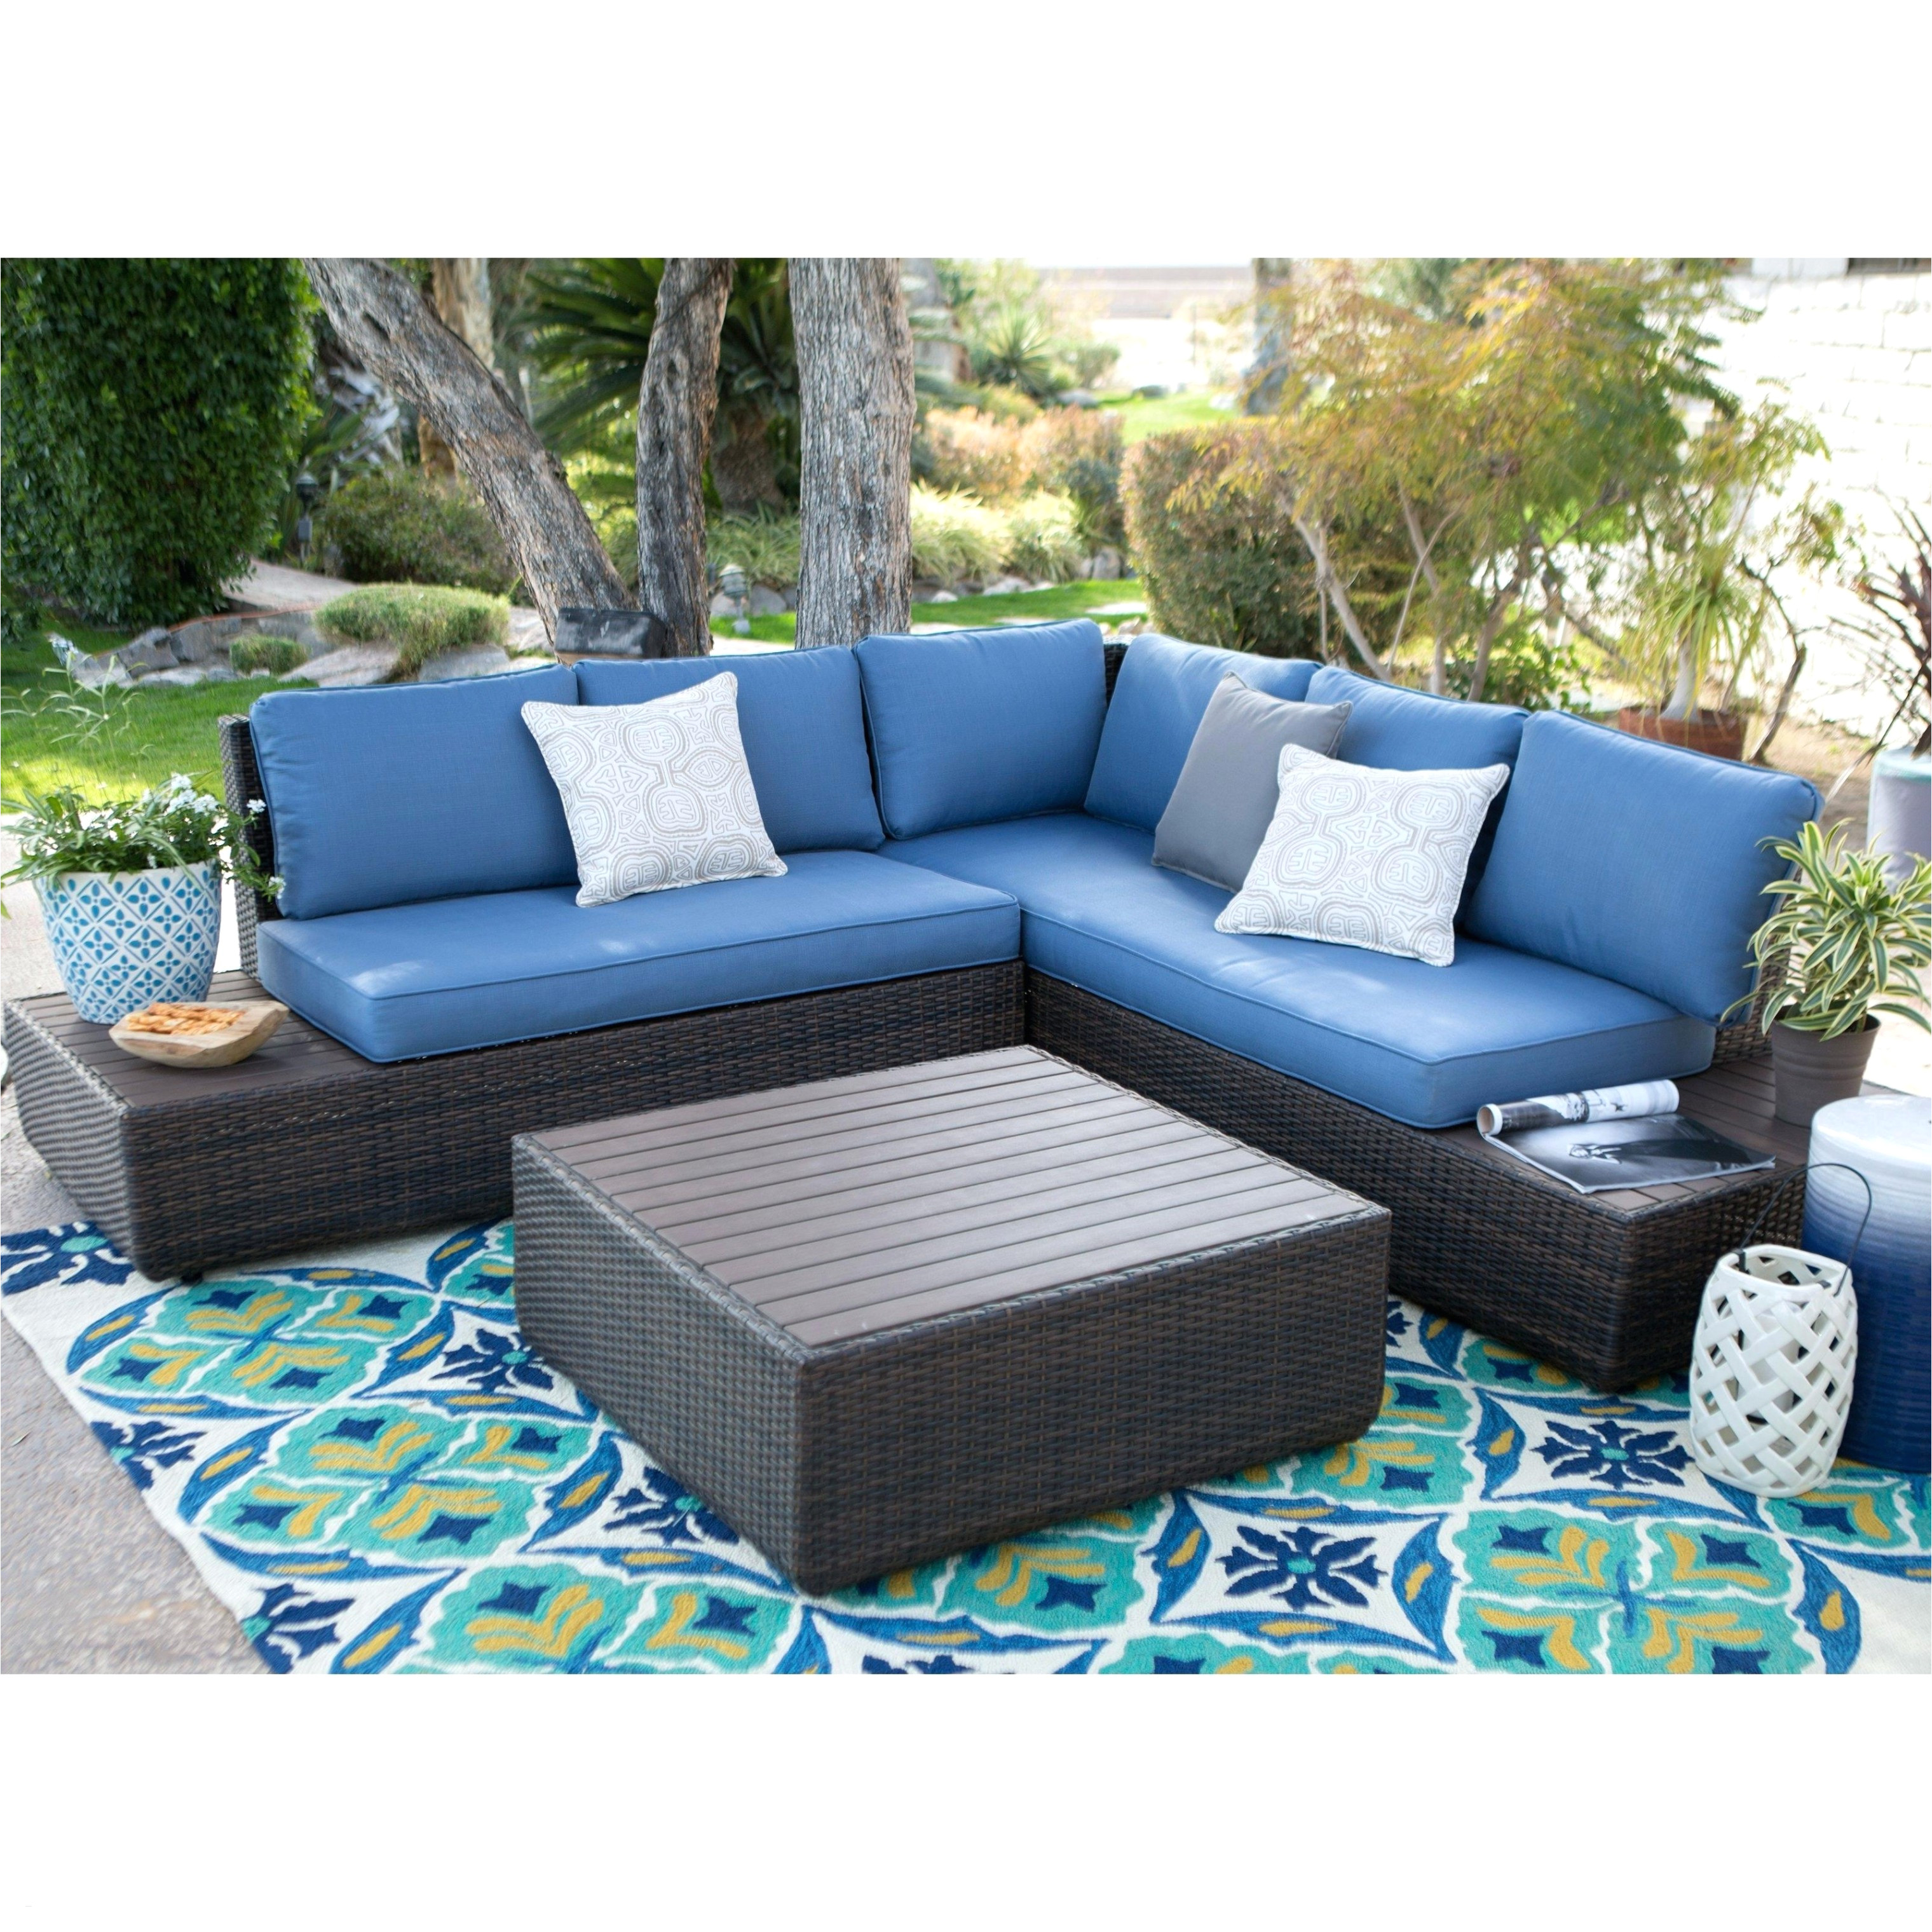 remarkable wood furniture parts within outdoor furniture repair awesome herrlich wicker outdoor sofa 0d